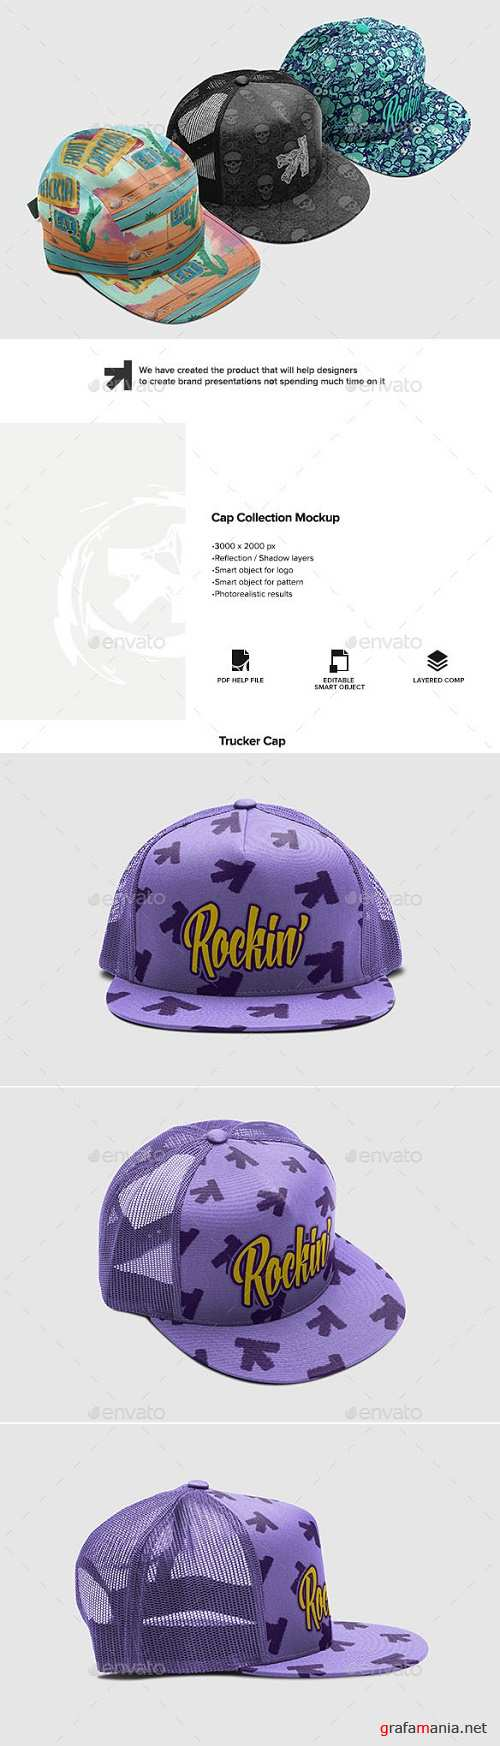 Cap Collection Mockup - 16727036